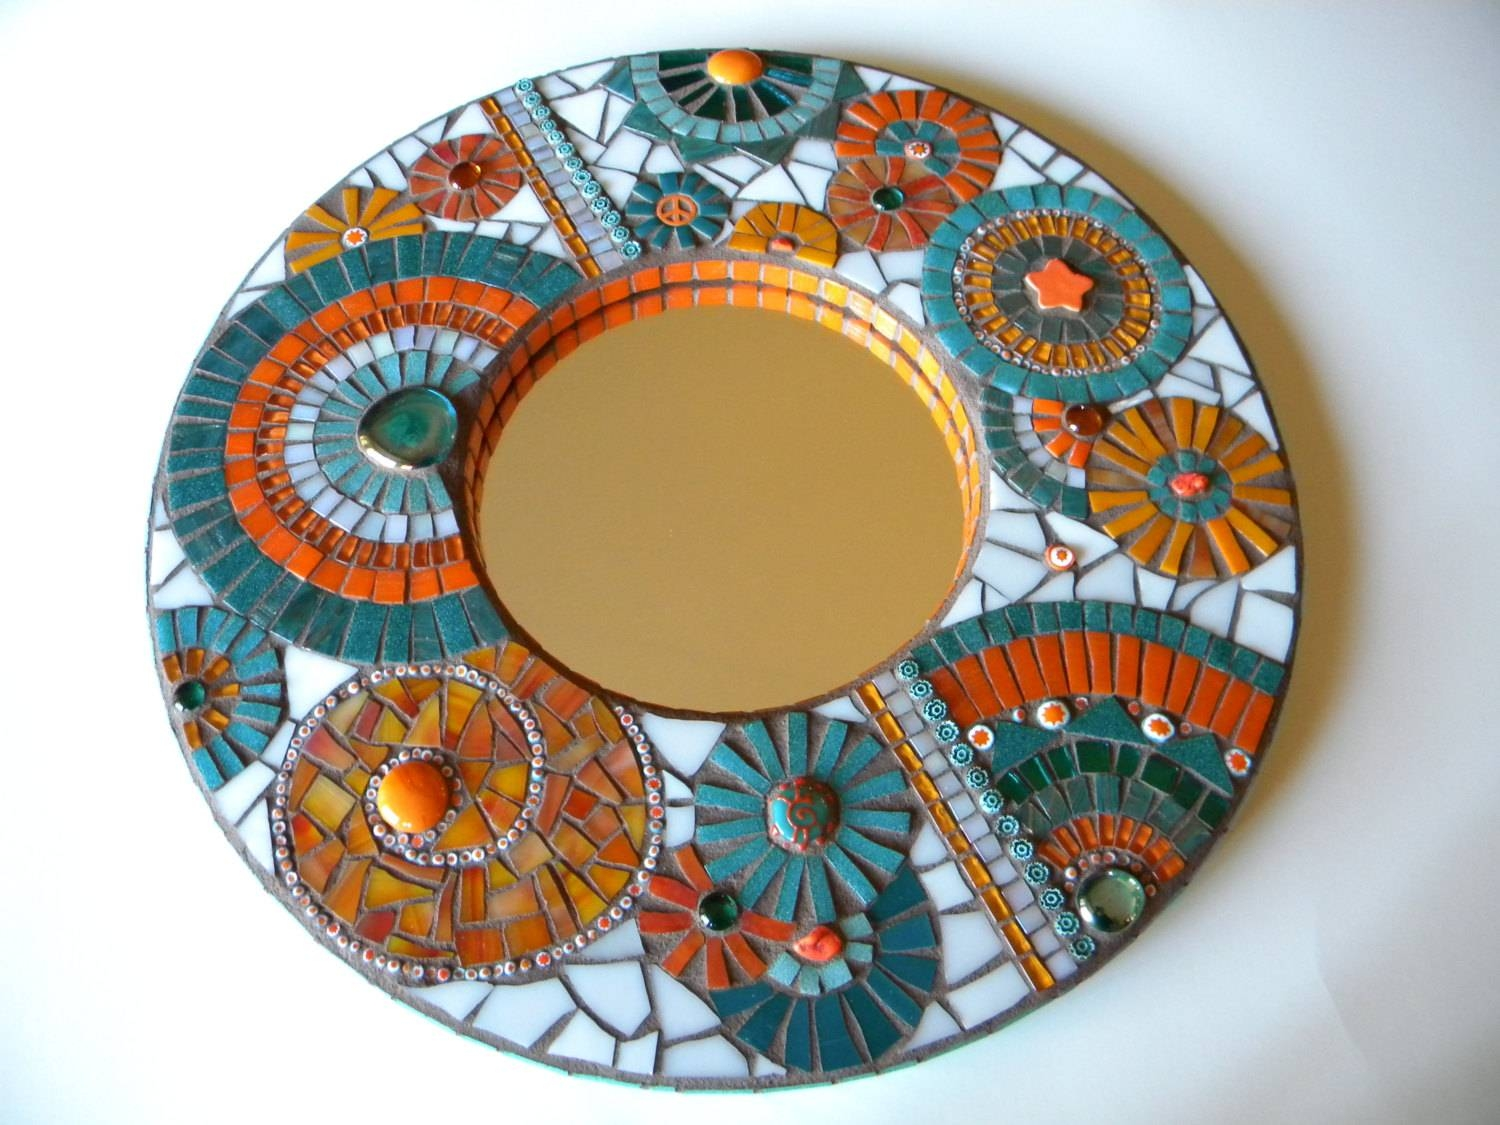 Orange & Teal Mosaic Mirror Home Decor Wedding Gift Miami With Regard To Round Mosaic Mirrors (View 3 of 15)